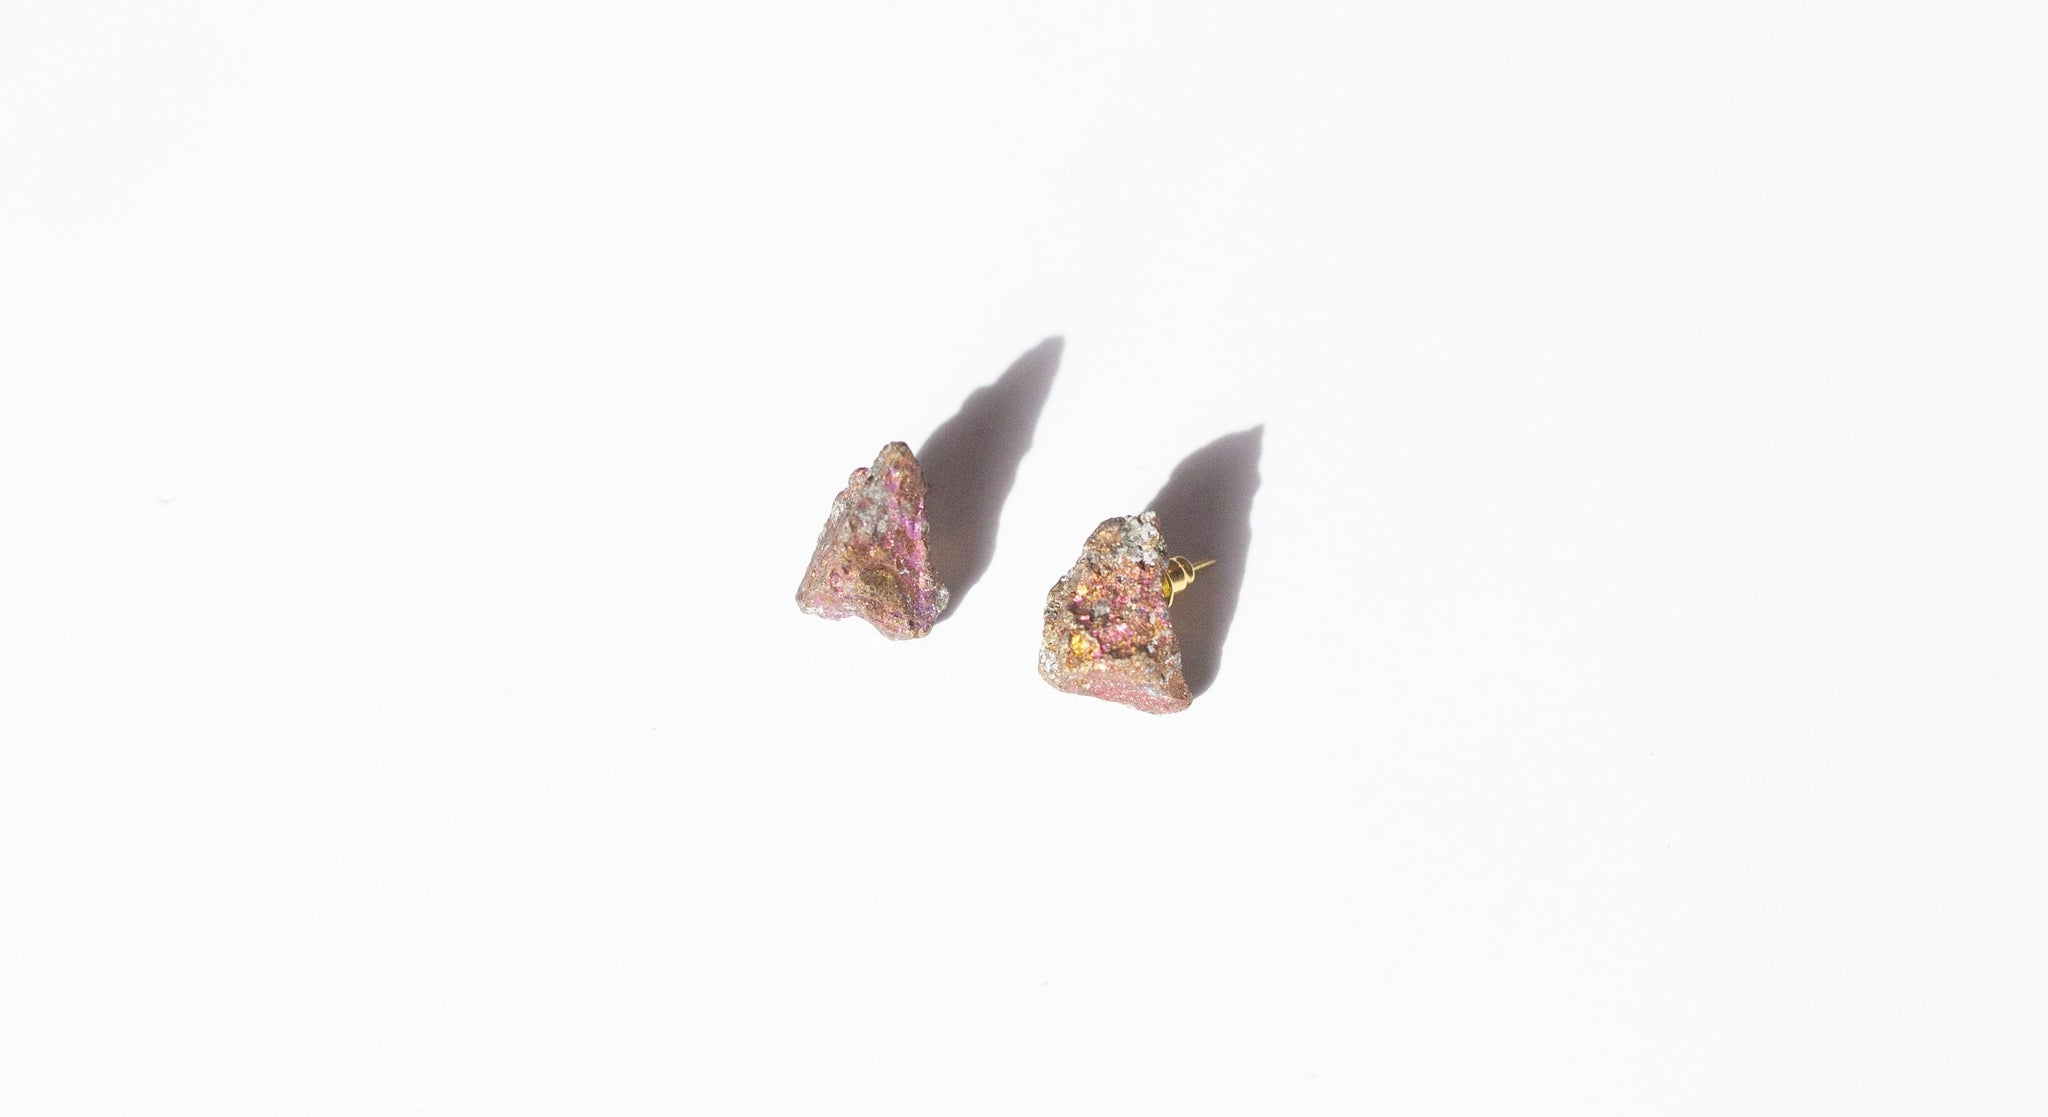 Peacock Ore Earrings | Crystal Stud Earrings | Awakened Rose